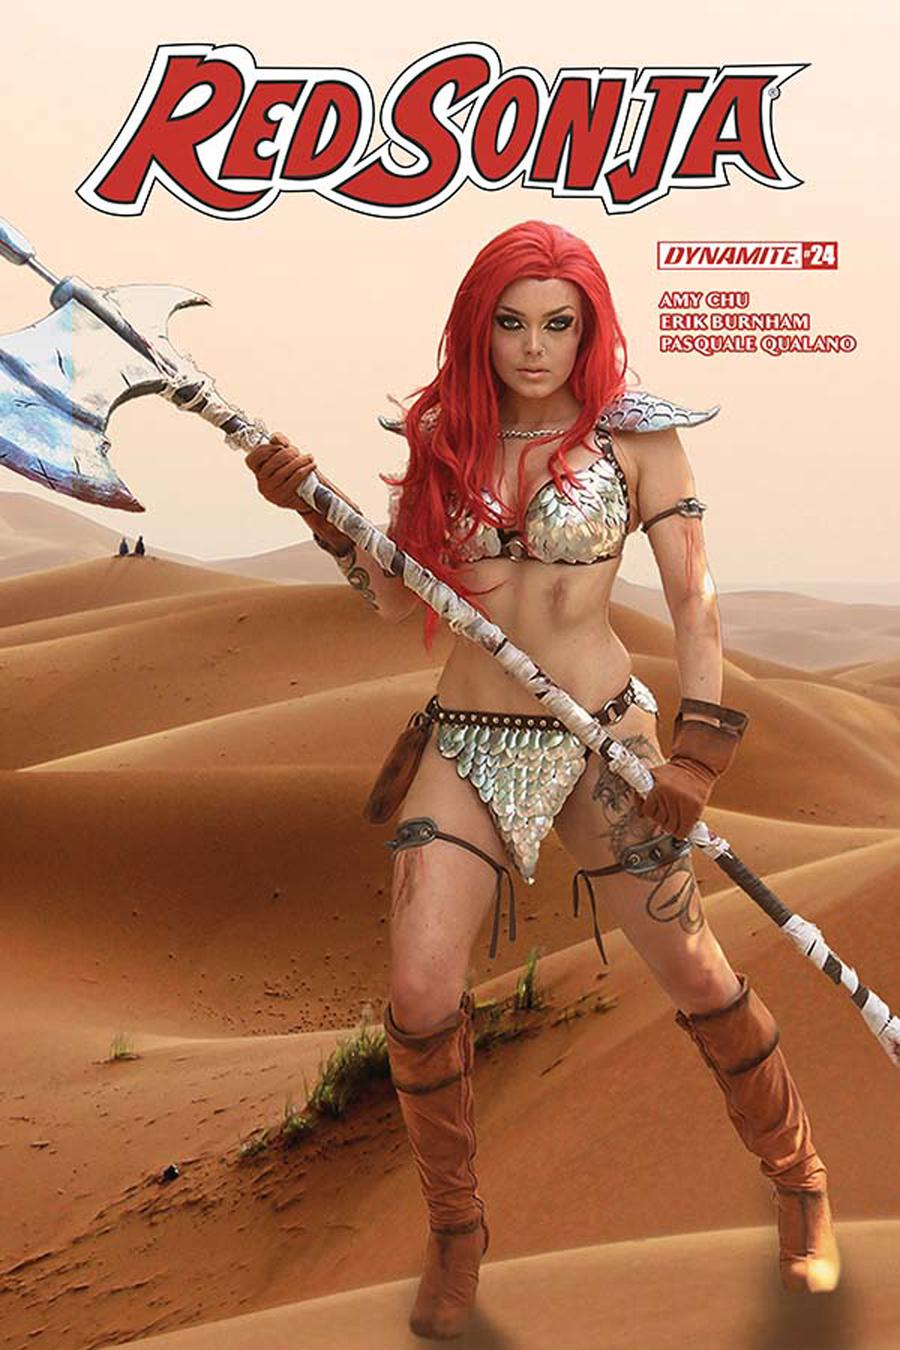 Red Sonja Vol 7 #24 Cover E Variant Cosplay Photo Subscription Cover